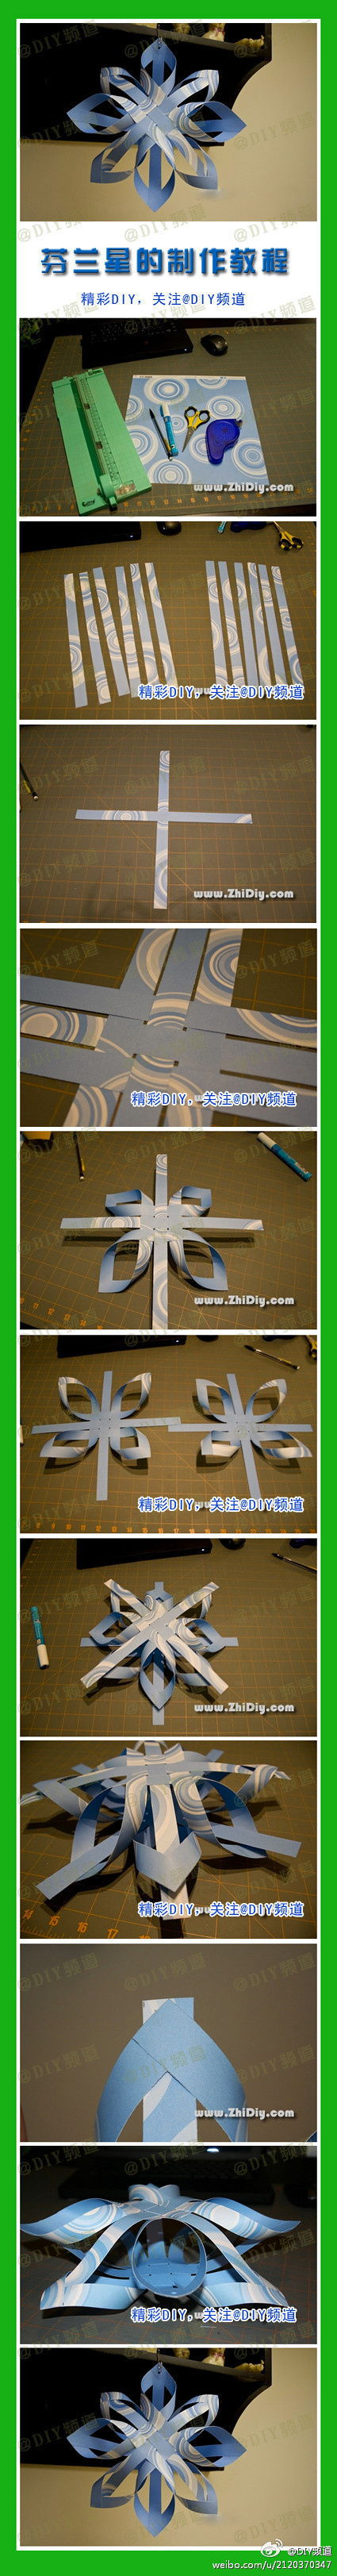 How to make 3D Paper Star step by step DIY tutorial instructions